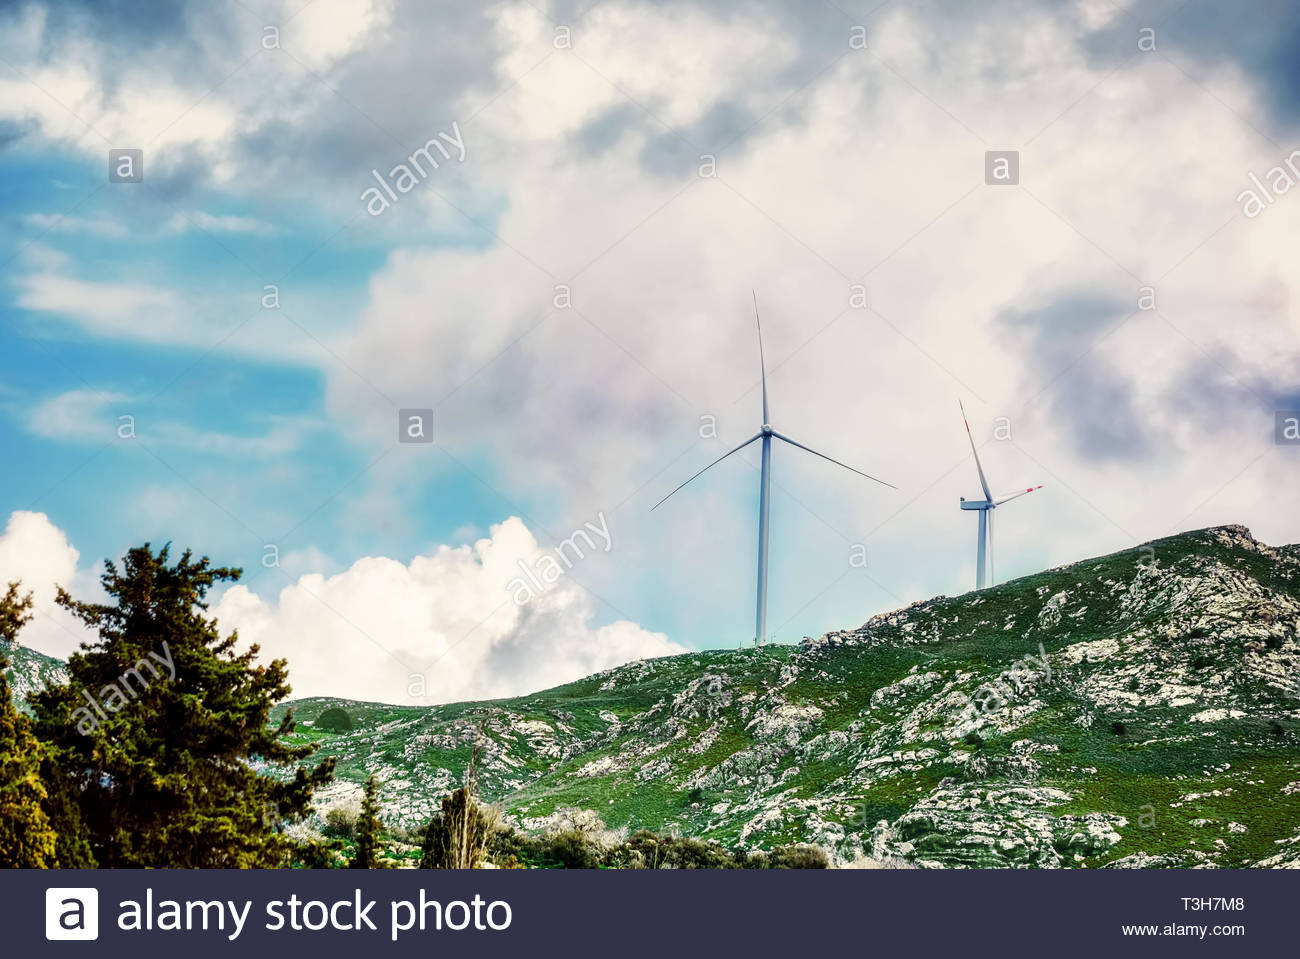 Wind turbines on the mountaintop against a cloudy sky background 1300x959